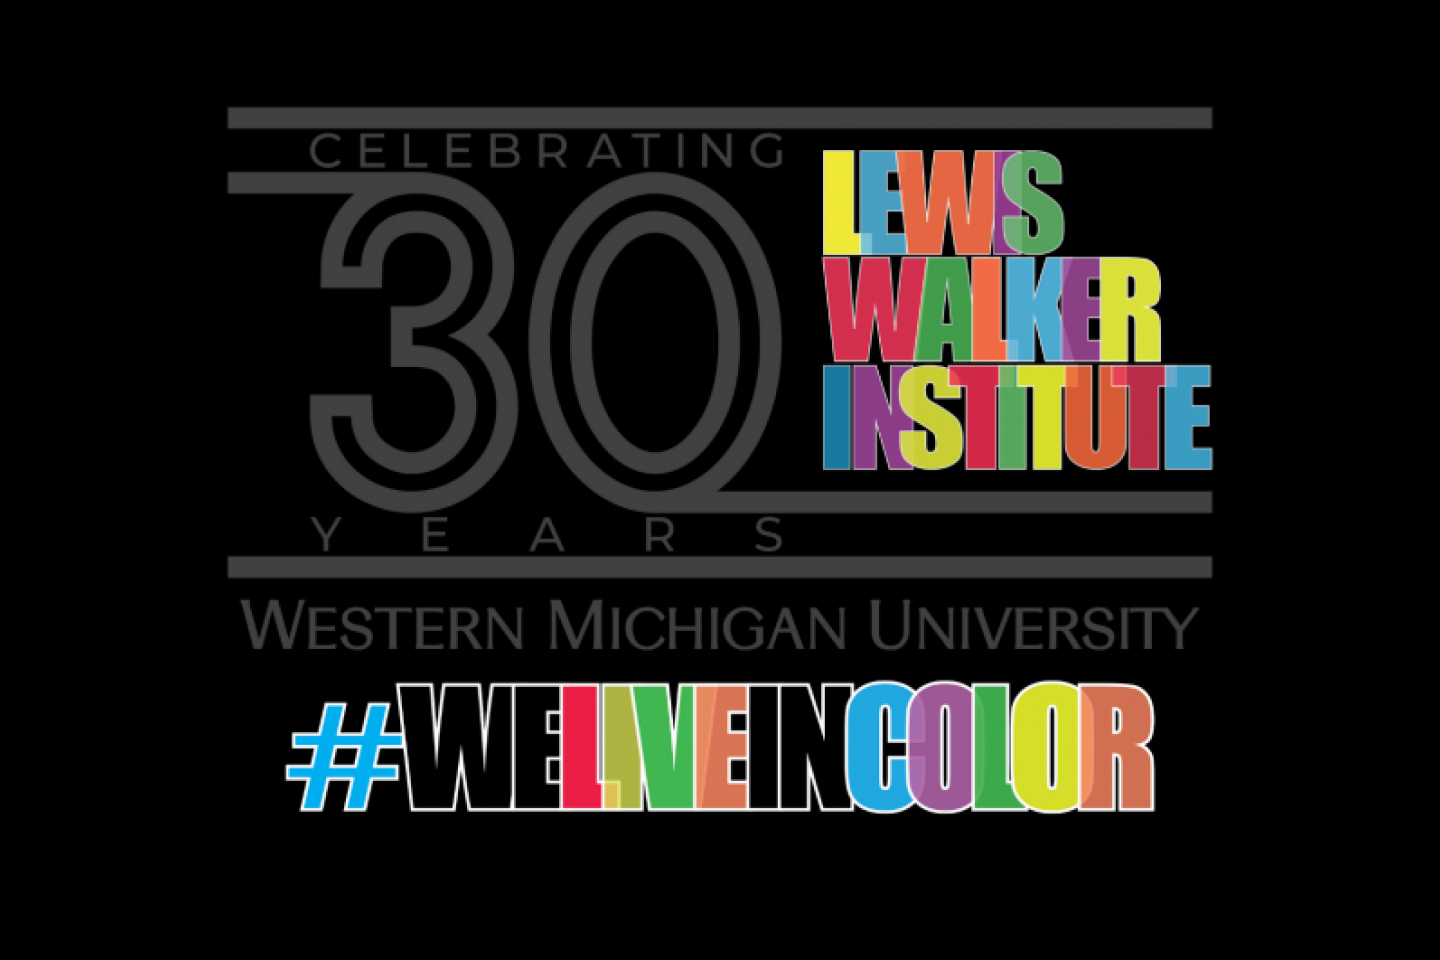 The logo for 30 years of the Lewis Walker Institute.